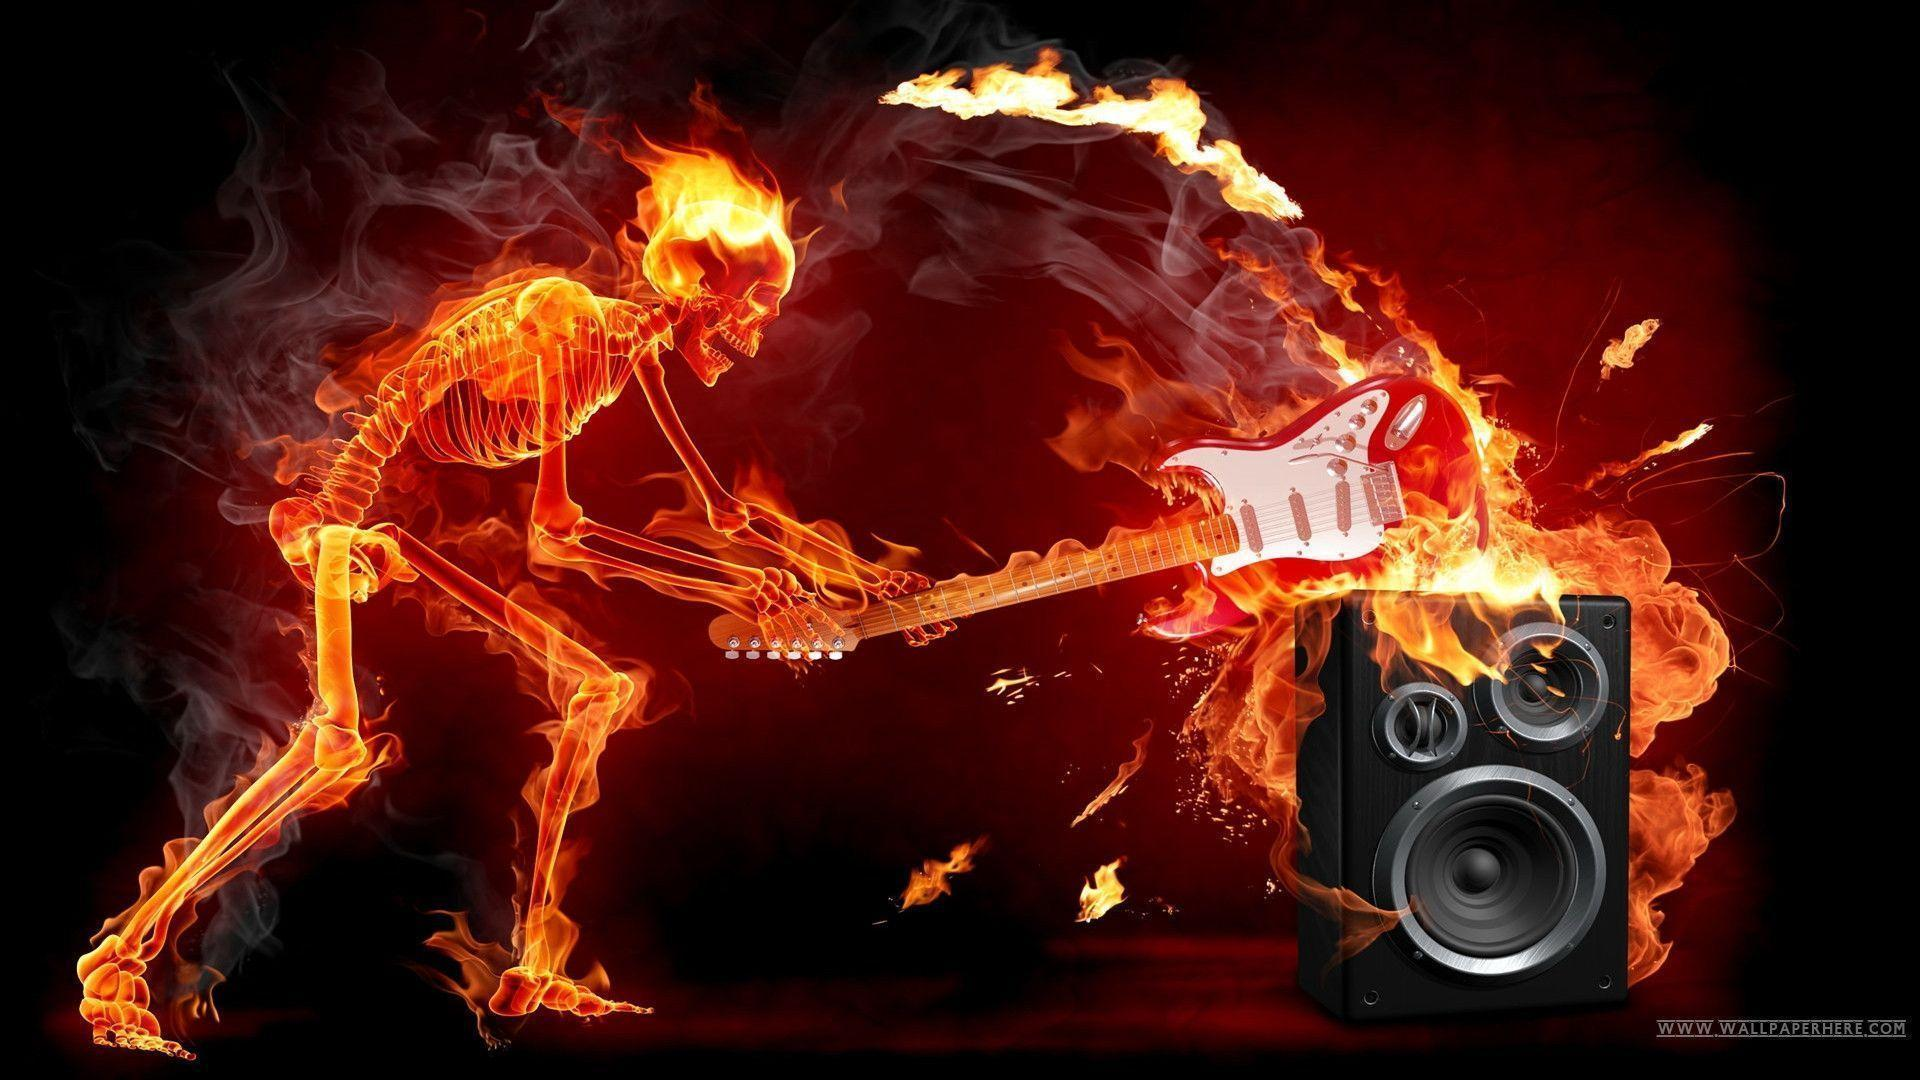 Fire Skull The Fire Of Artistic Creativity Design Wallpapers X